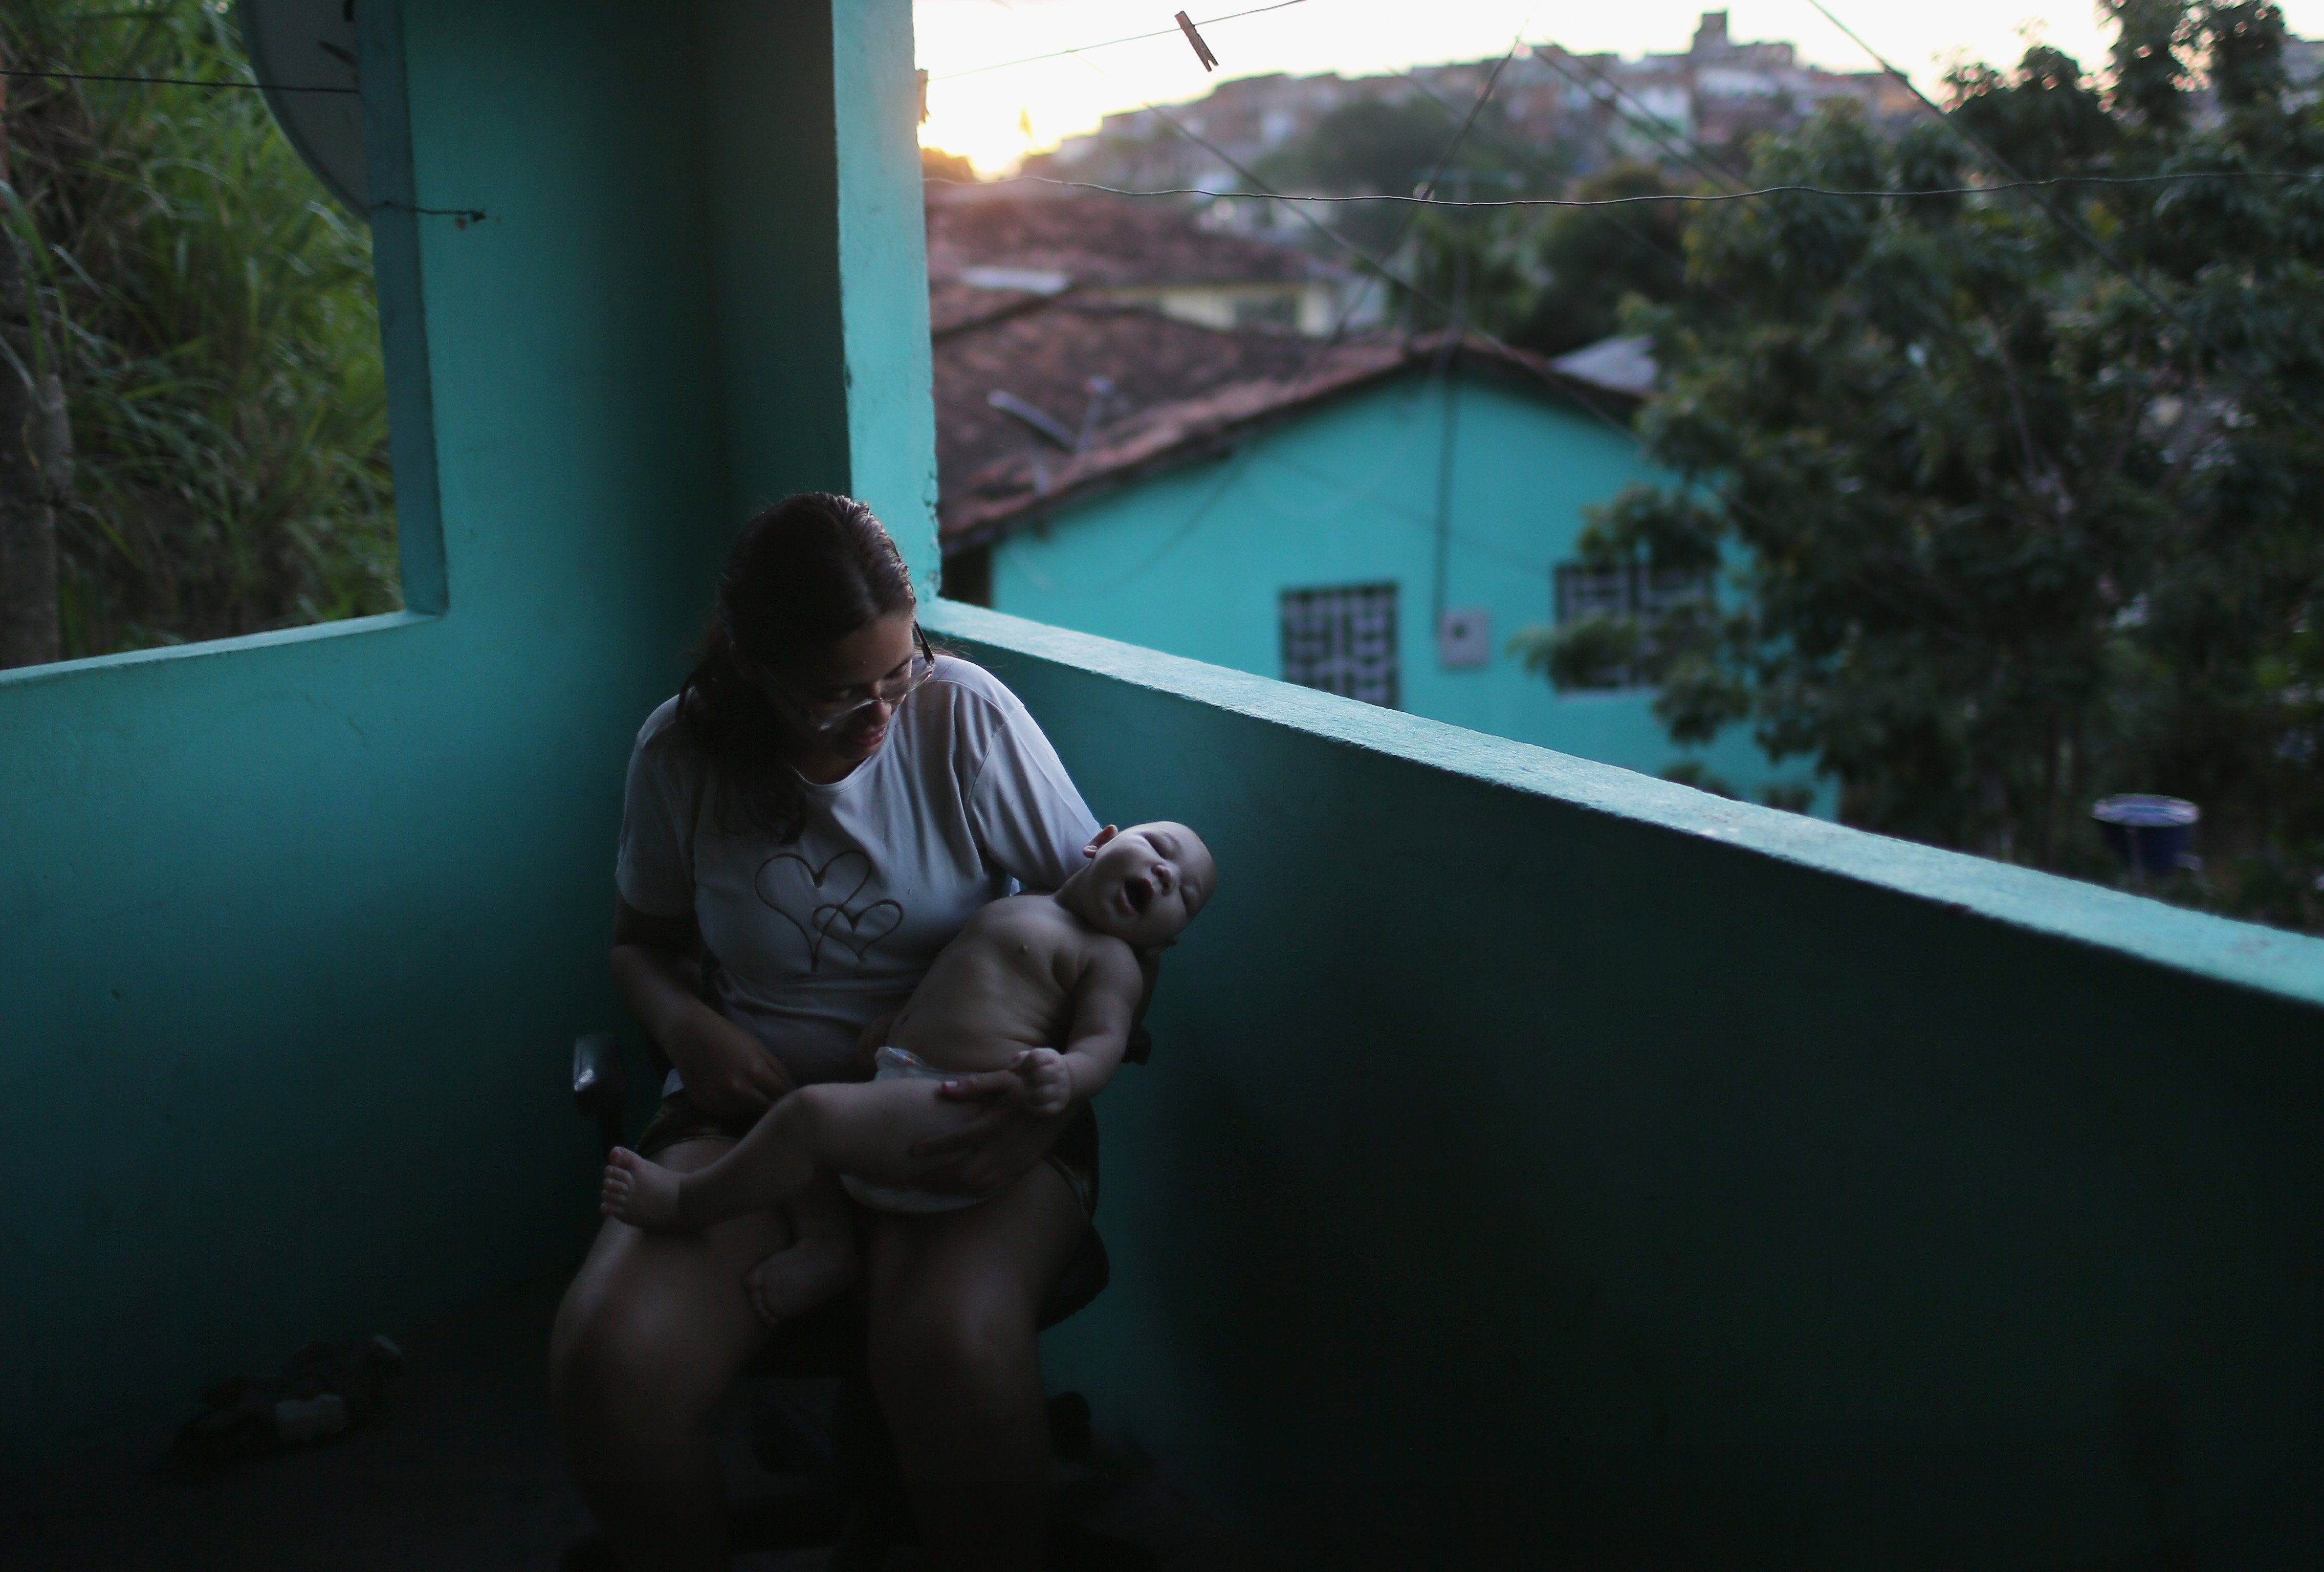 Mylene Helena Ferreira holds her five-month-old son David Henrique Ferreira, who has microcephaly, in Recife, Brazil, Jan. 25, 2016.